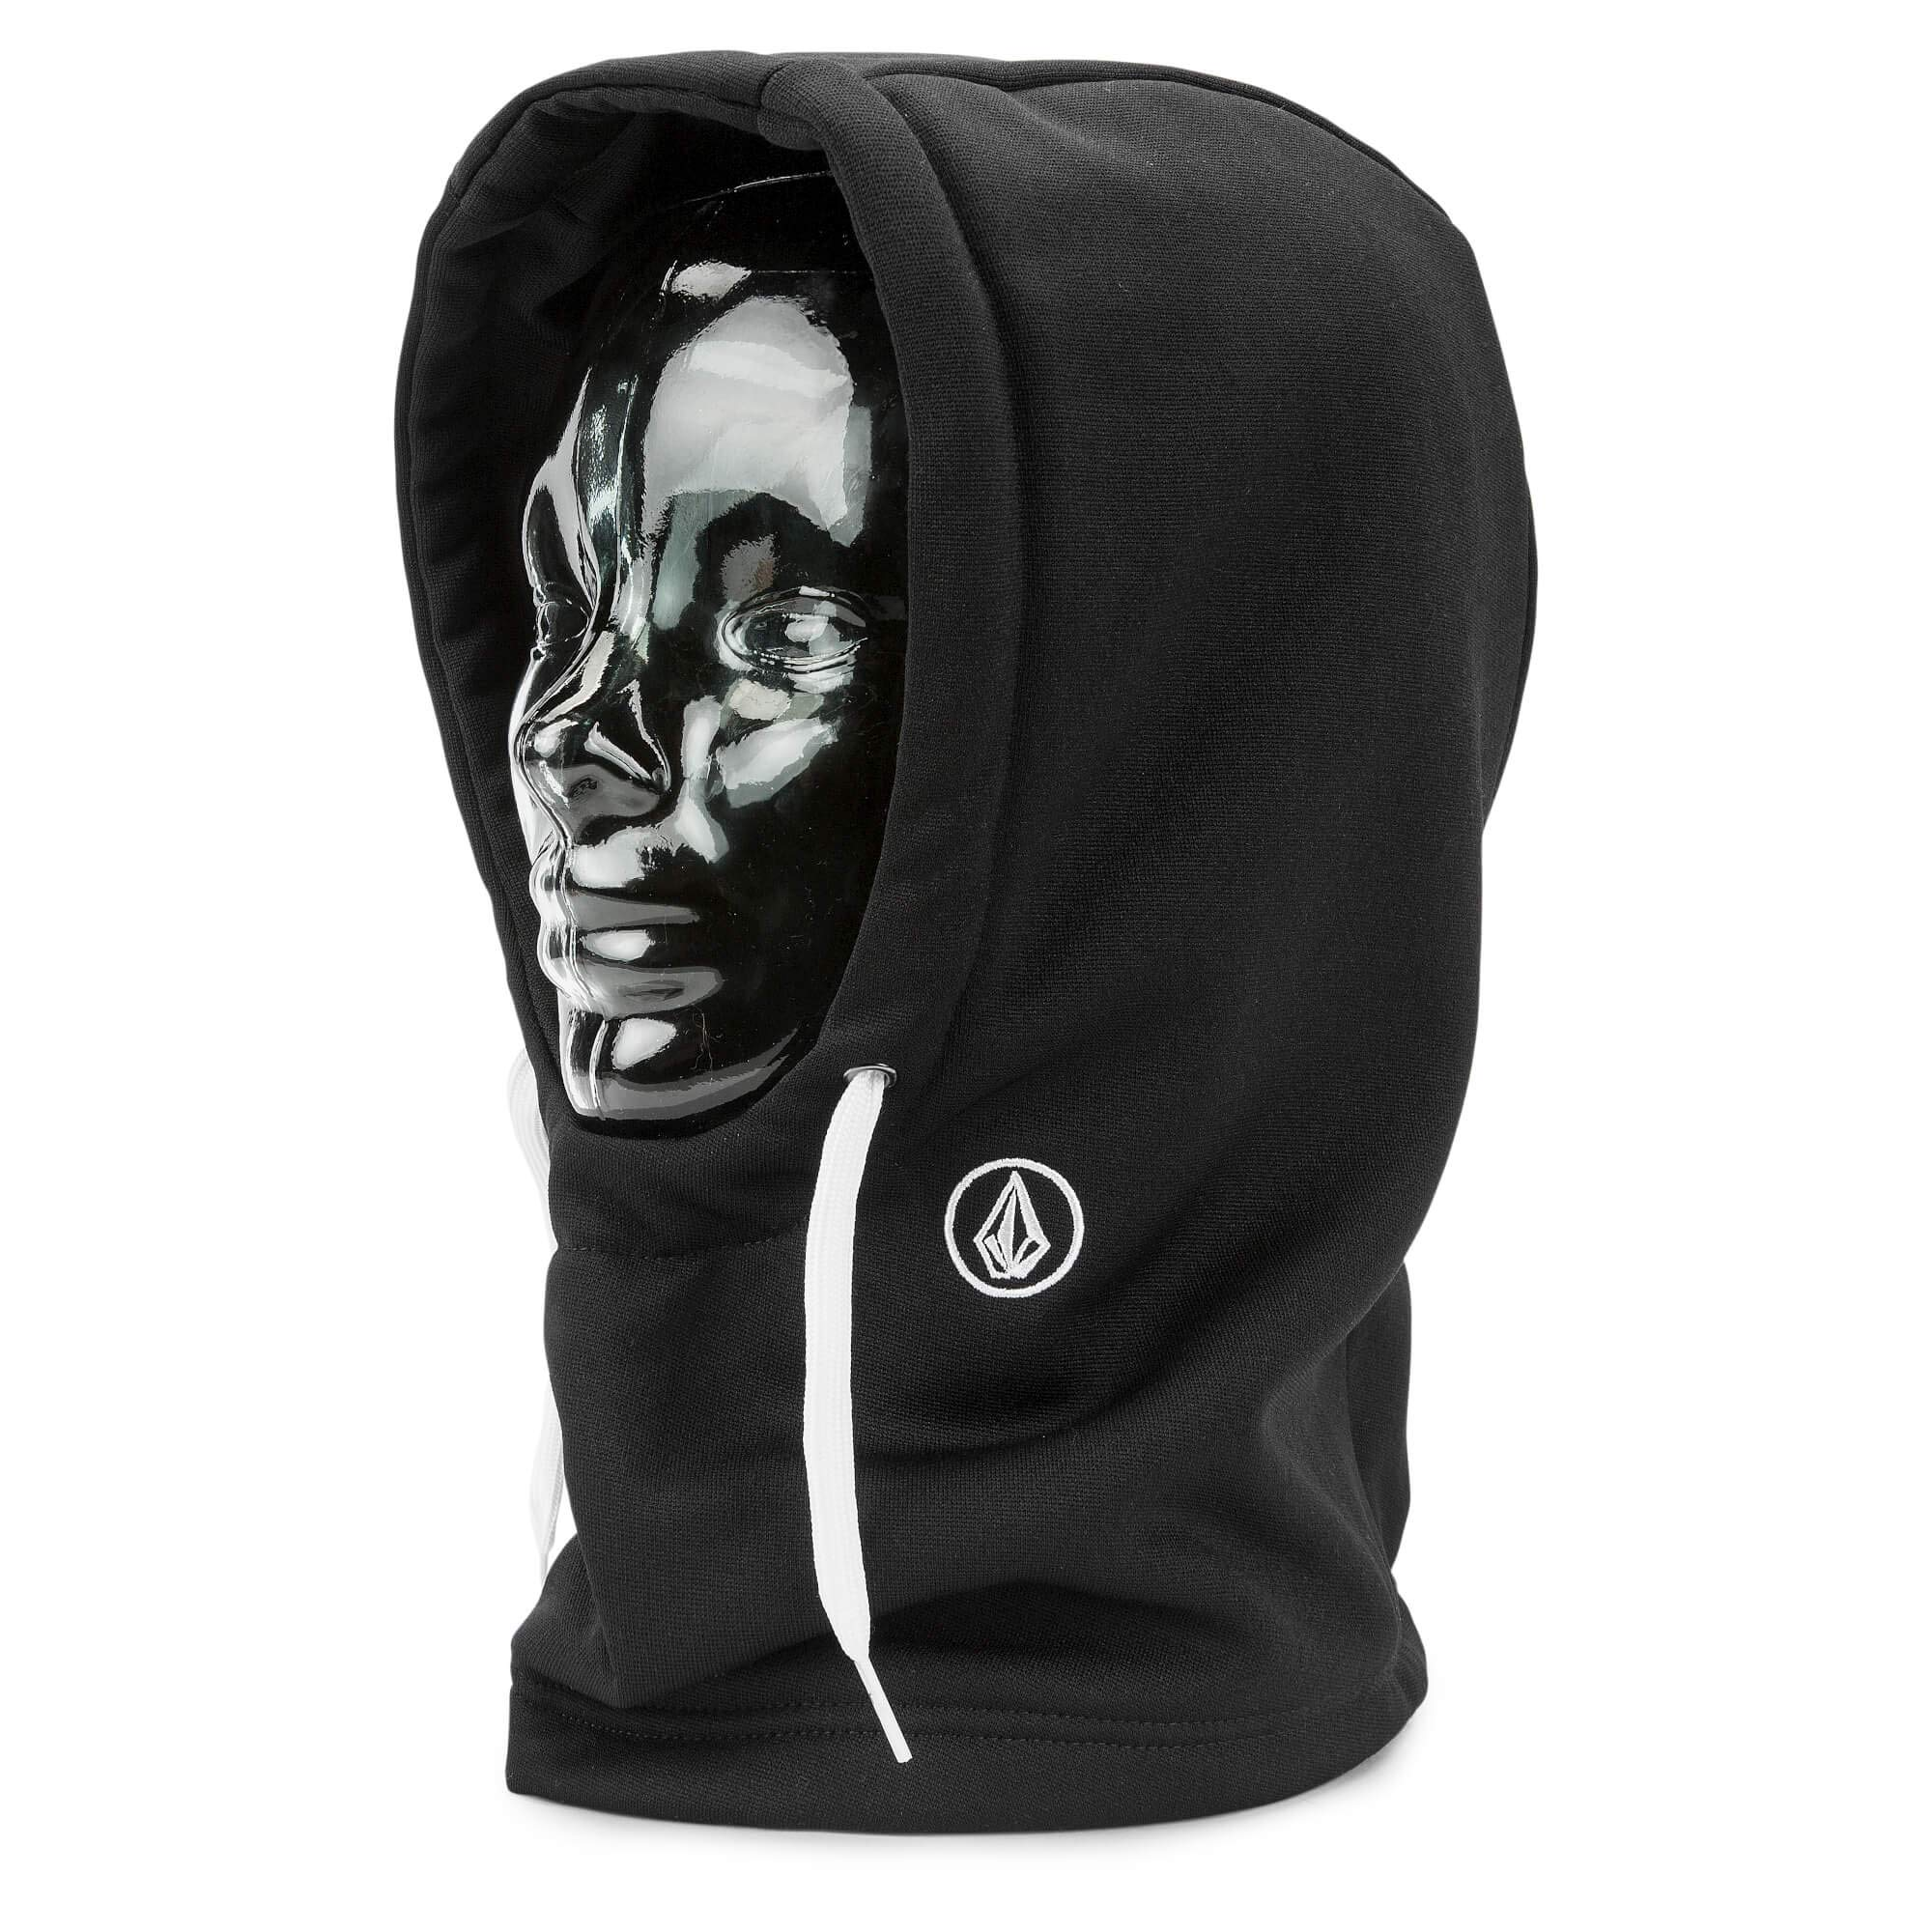 Volcom Women's Dang Hydro Fleece Hood Only, Black One Size Fits All